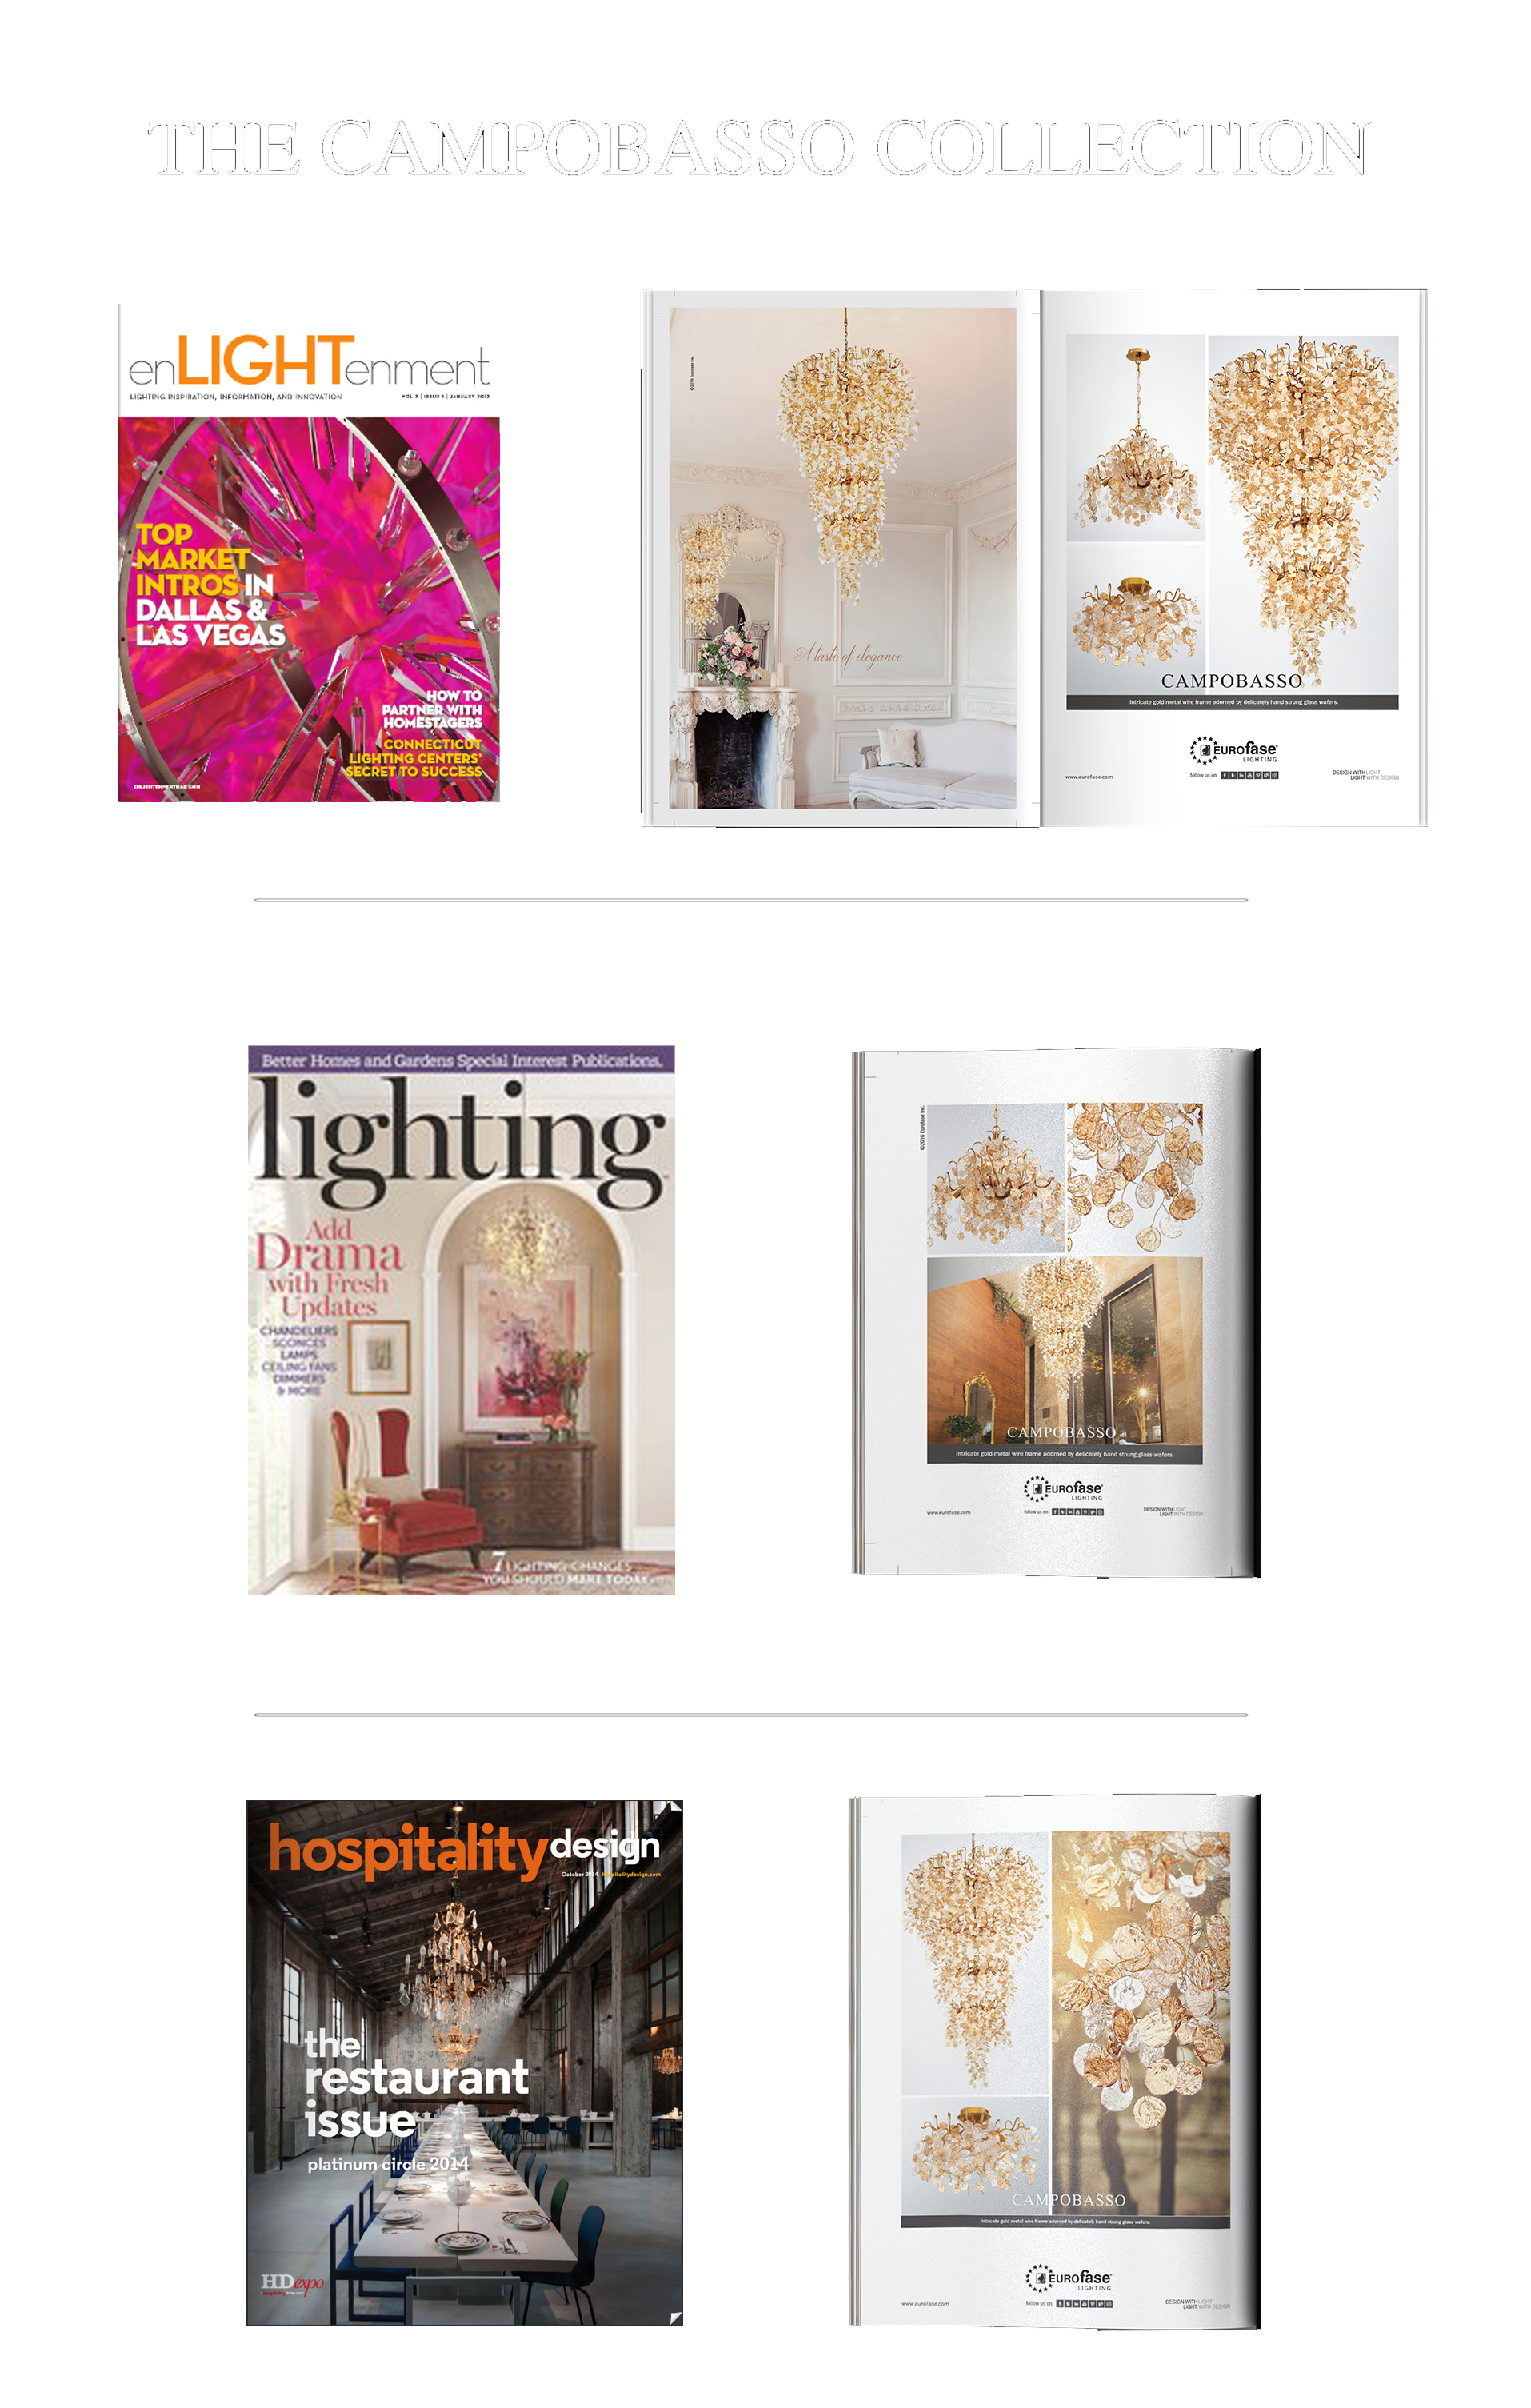 The Campobasso Collection featured in Enlightment Magazine, ALA Magazine, and Hospitality Design.